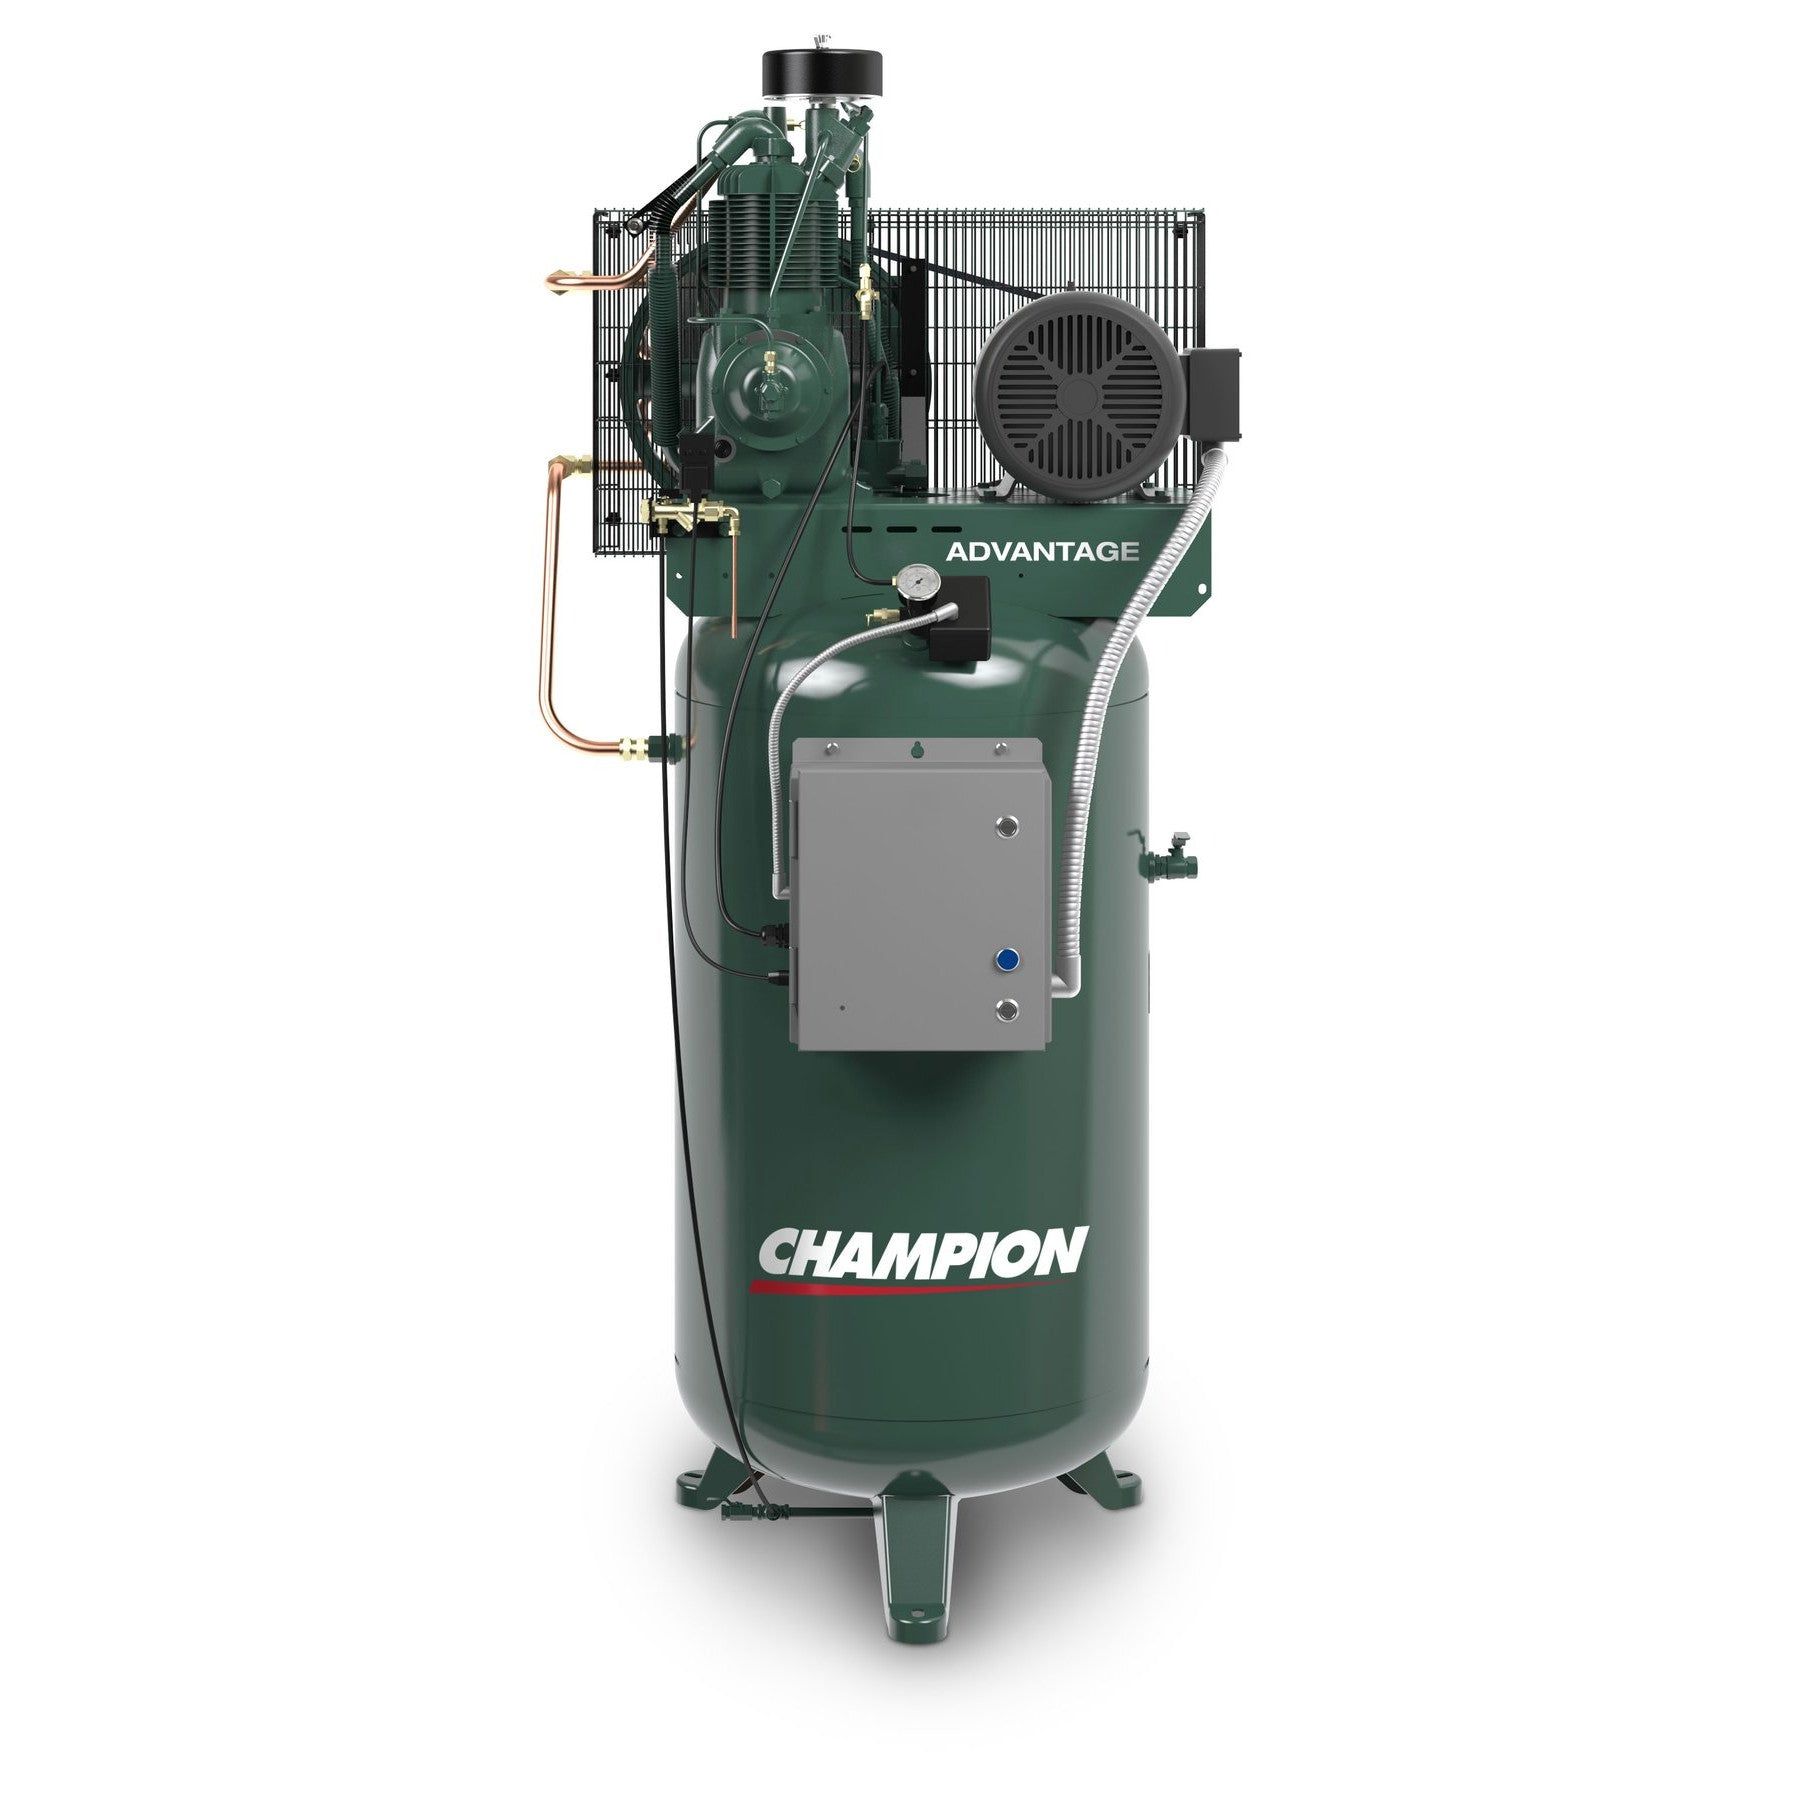 Champion VR7F-8 Air Compressor Fully Equipped (230V, 1PH, 7.5HP, 80GL)